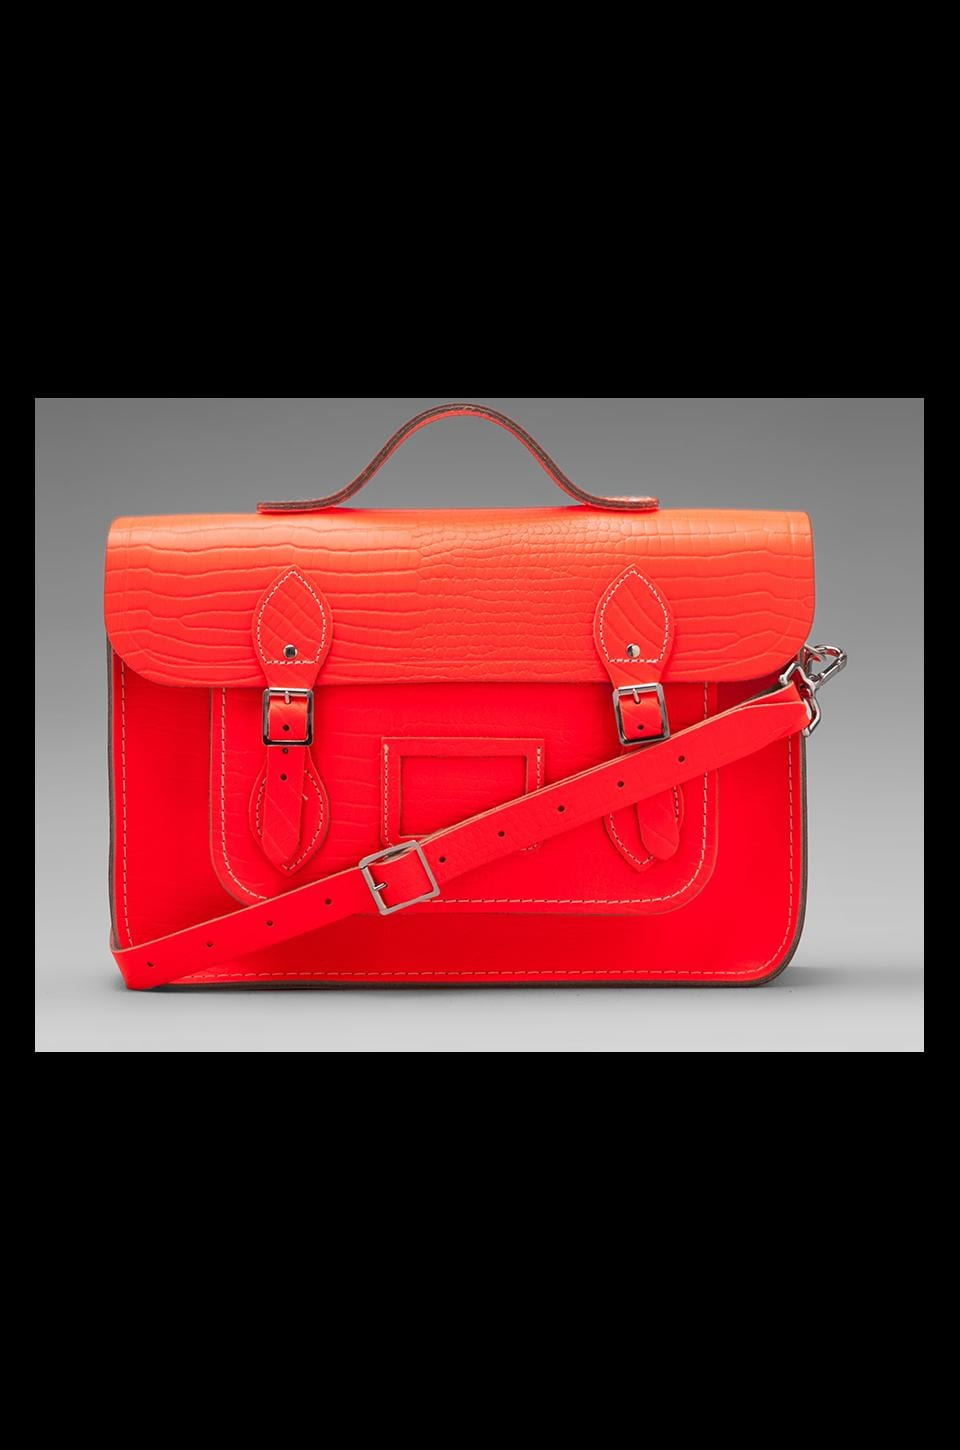 The Cambridge Satchel Company Embossed Stamp Satchel in Fluoro Red